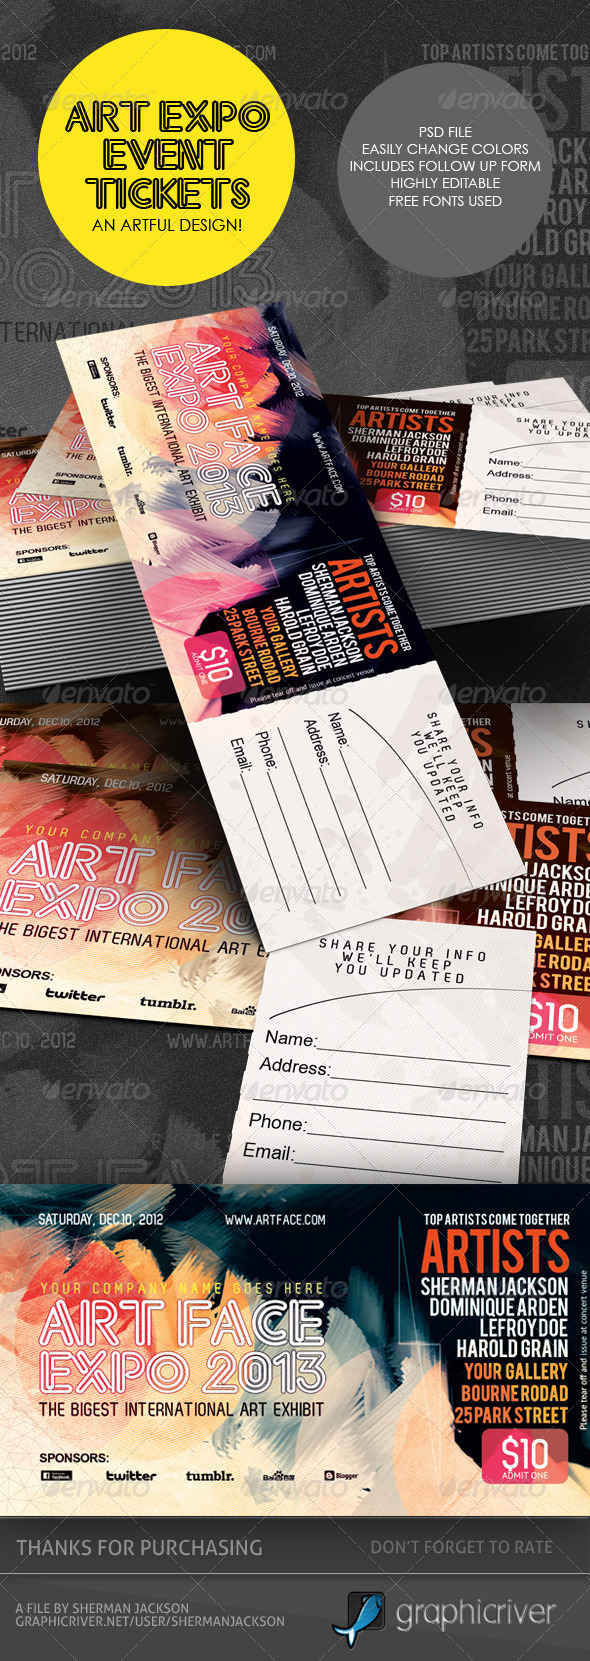 GraphicRiver Art Expo Art Show Event Tickets & Passes Template 3542861